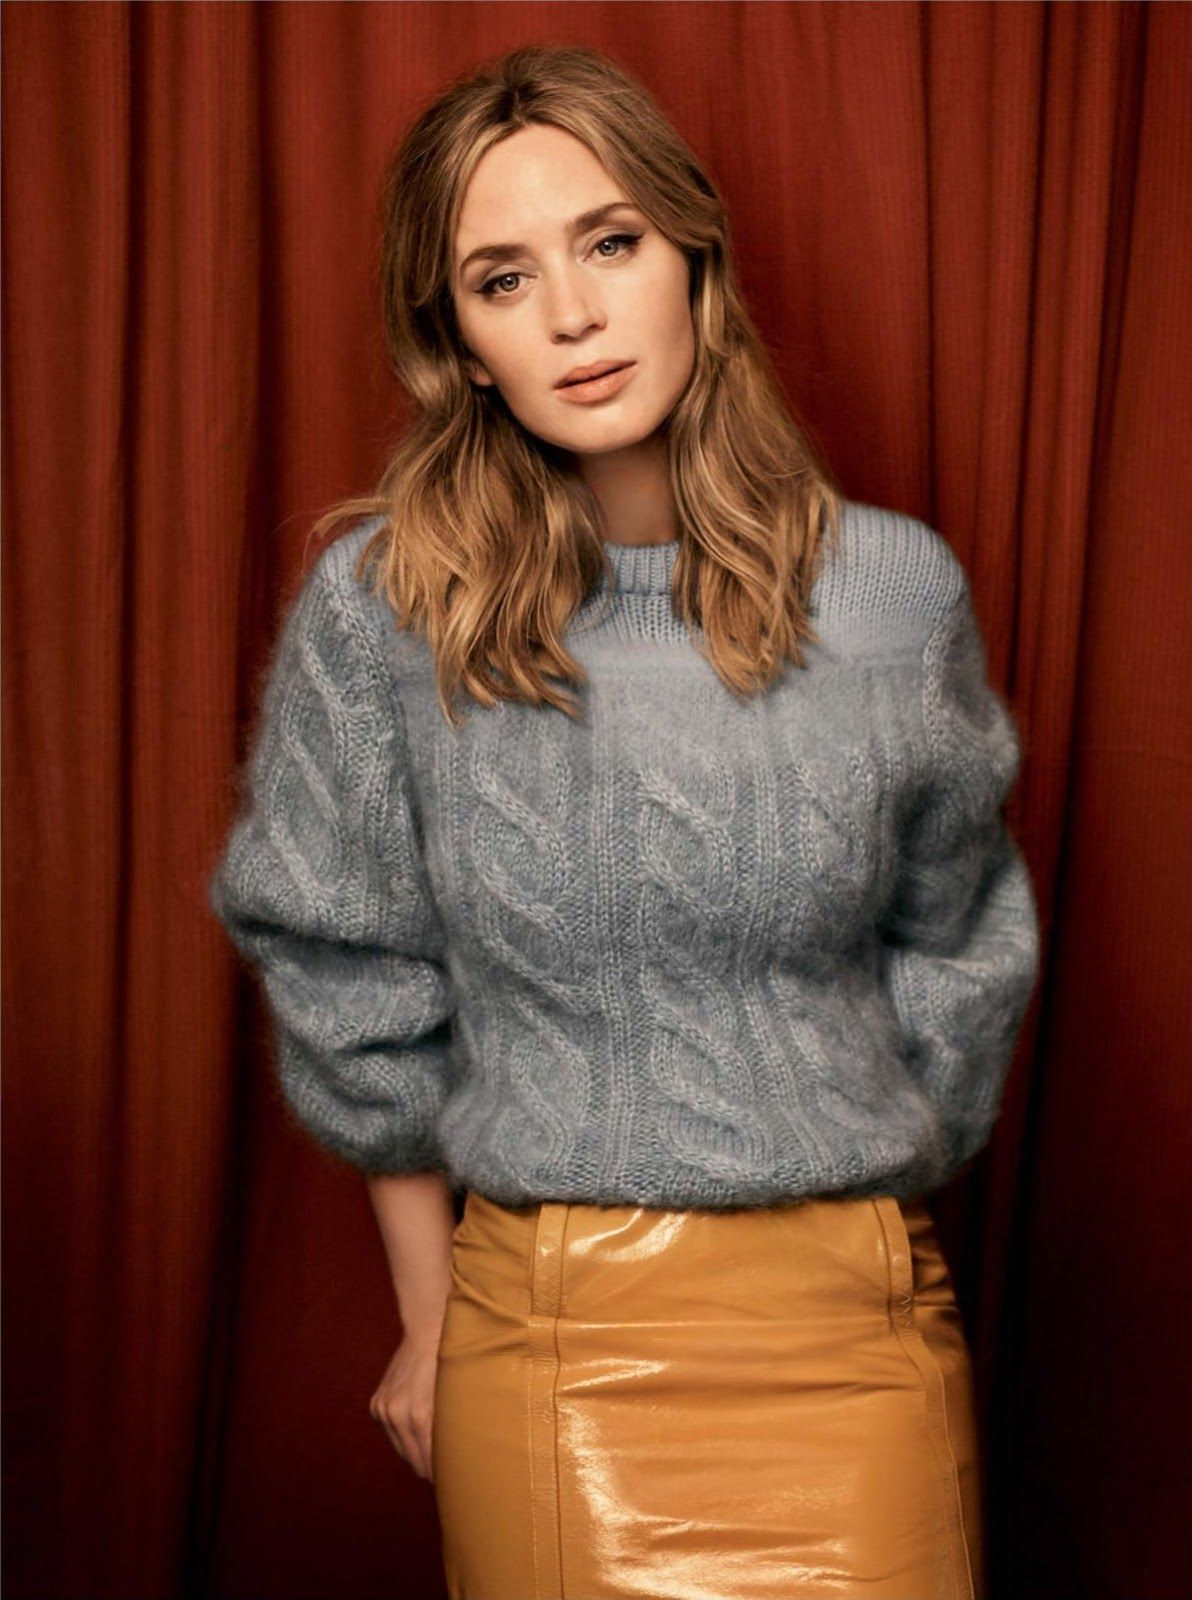 soft grey cabled sweater and light caramel leather skirt   Emily Blunt for Vogue UK, November issue